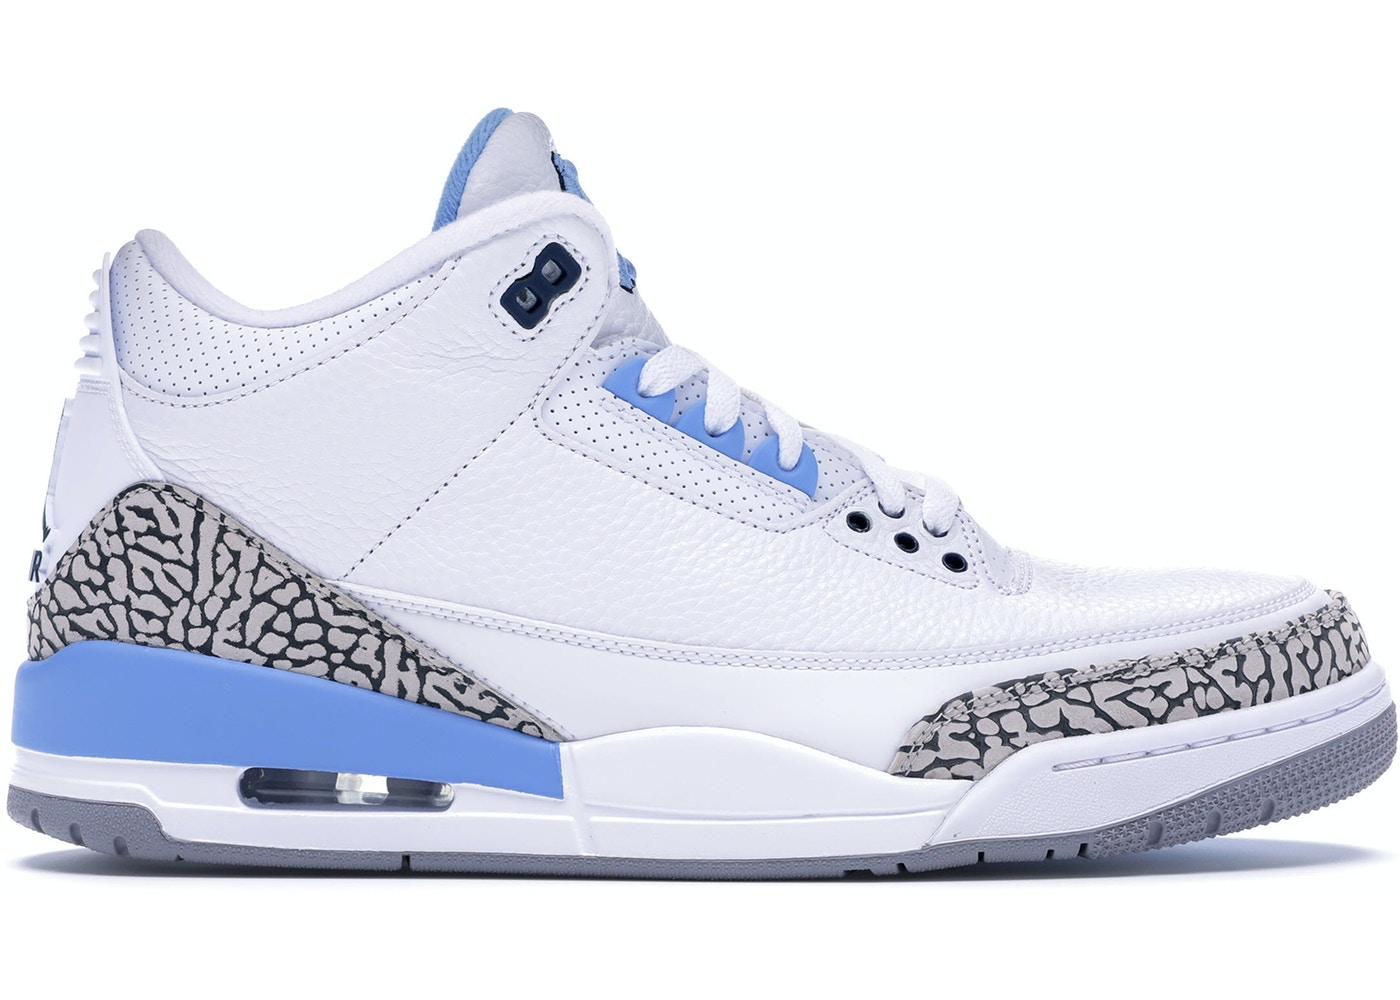 finest selection 8a848 75904 Jordan 3 Retro UNC PE